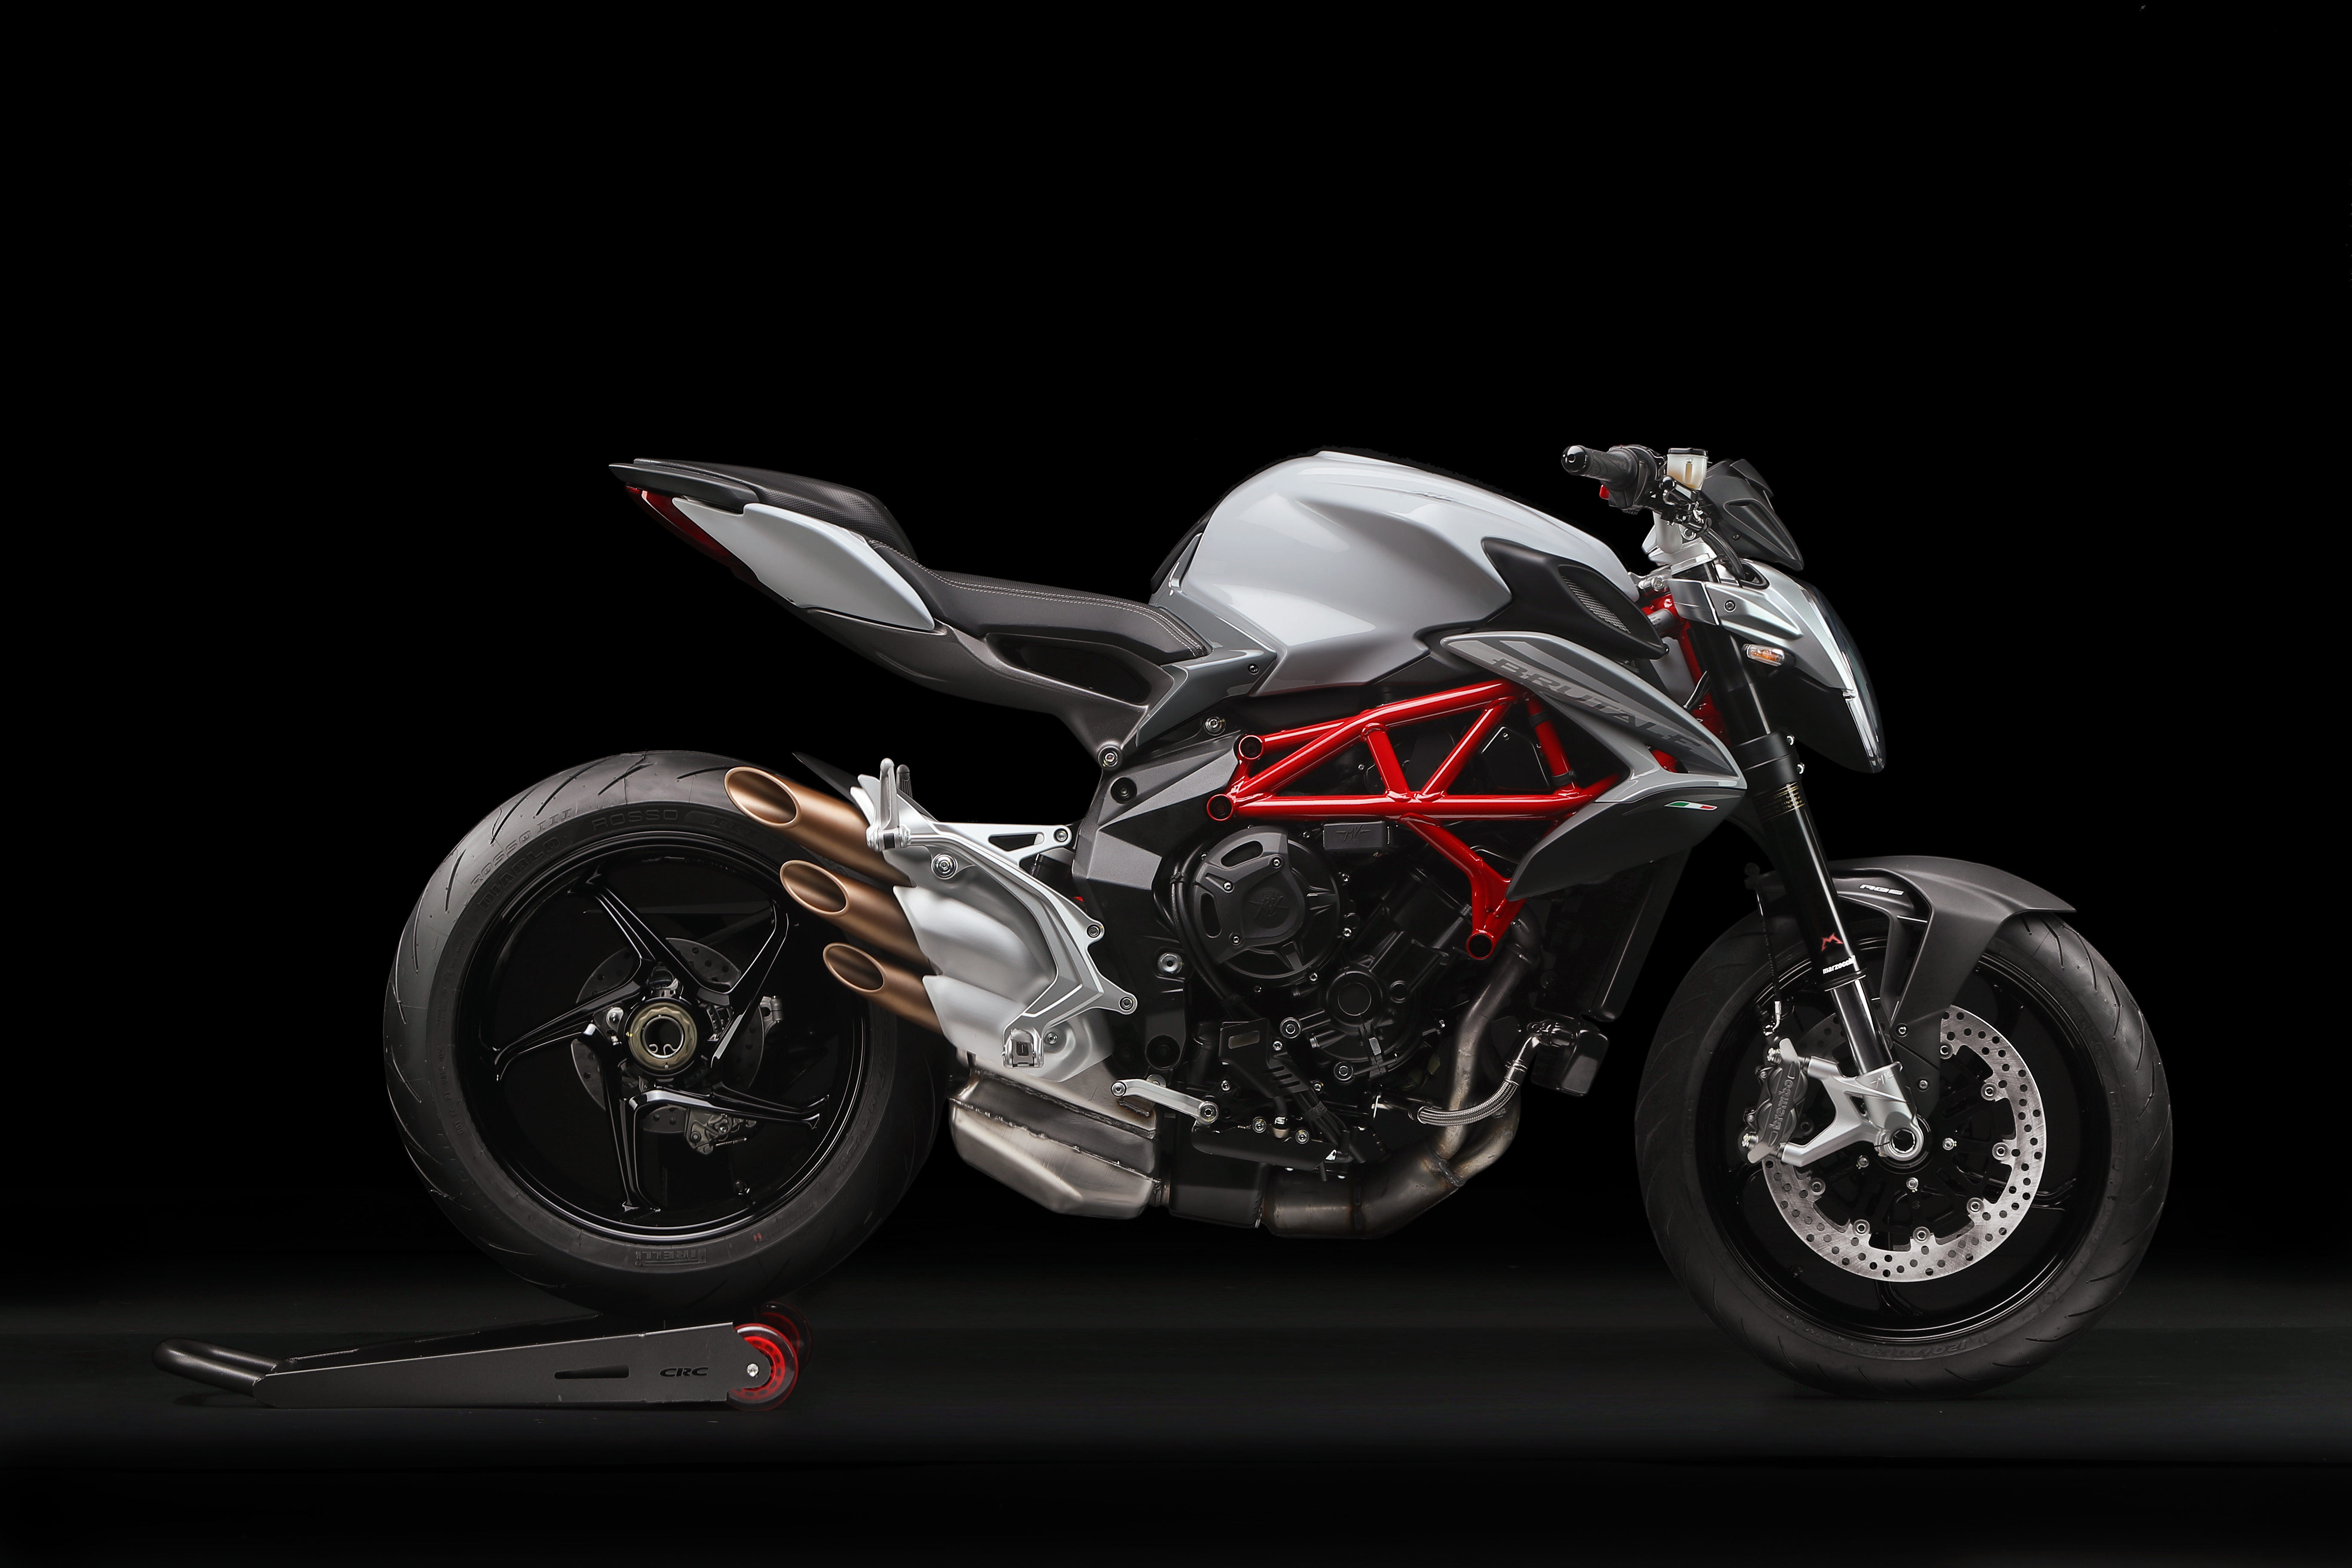 News : All the excitement of riding an MV Agusta with an A2